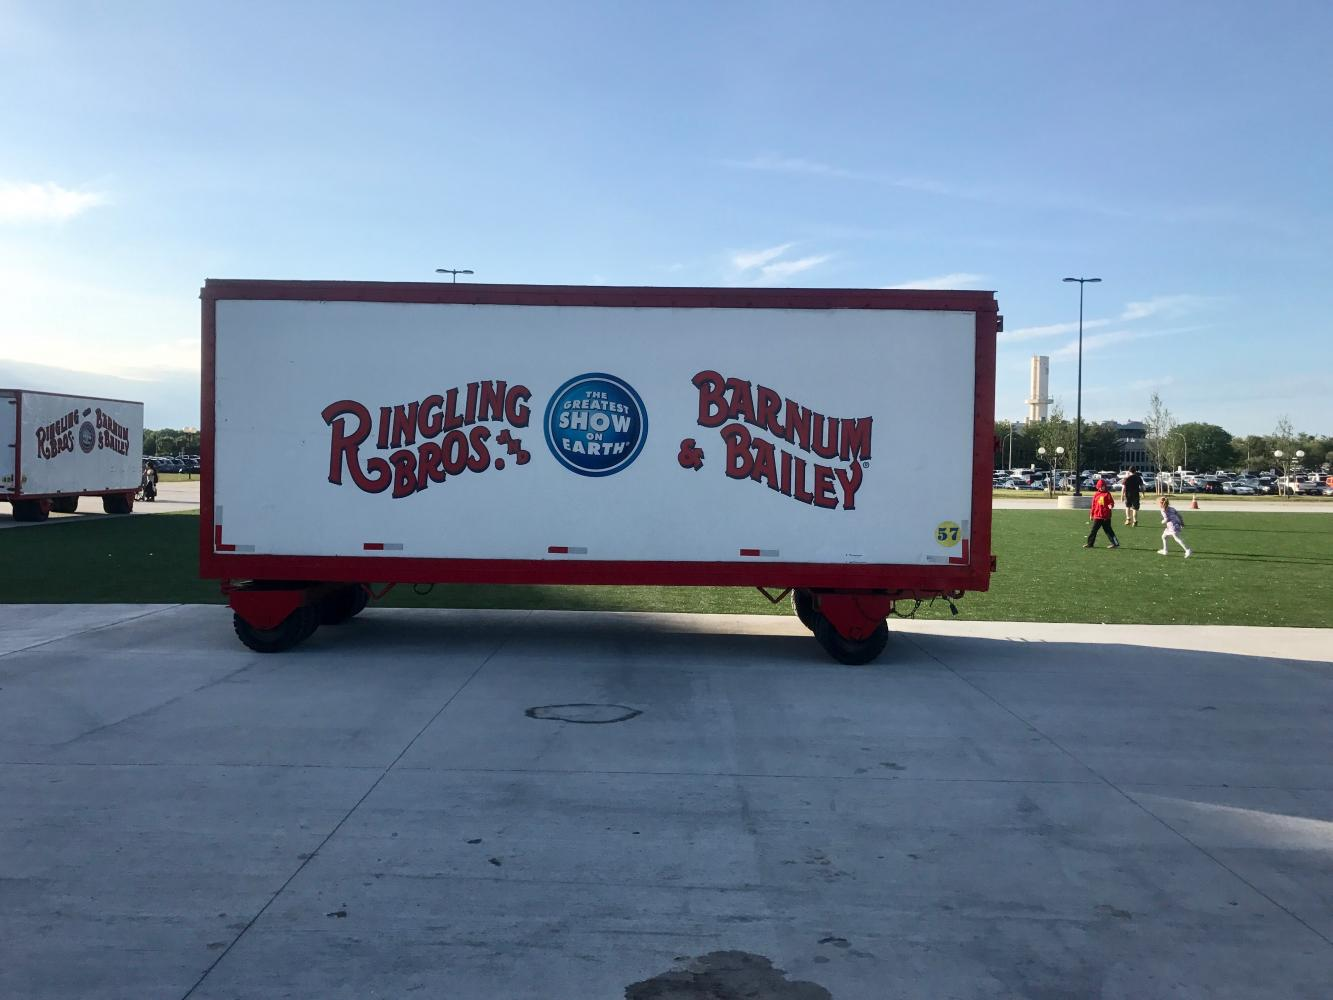 The greatest show on earth no longer: Ringling Brothers/Barnum & Bailey close production.